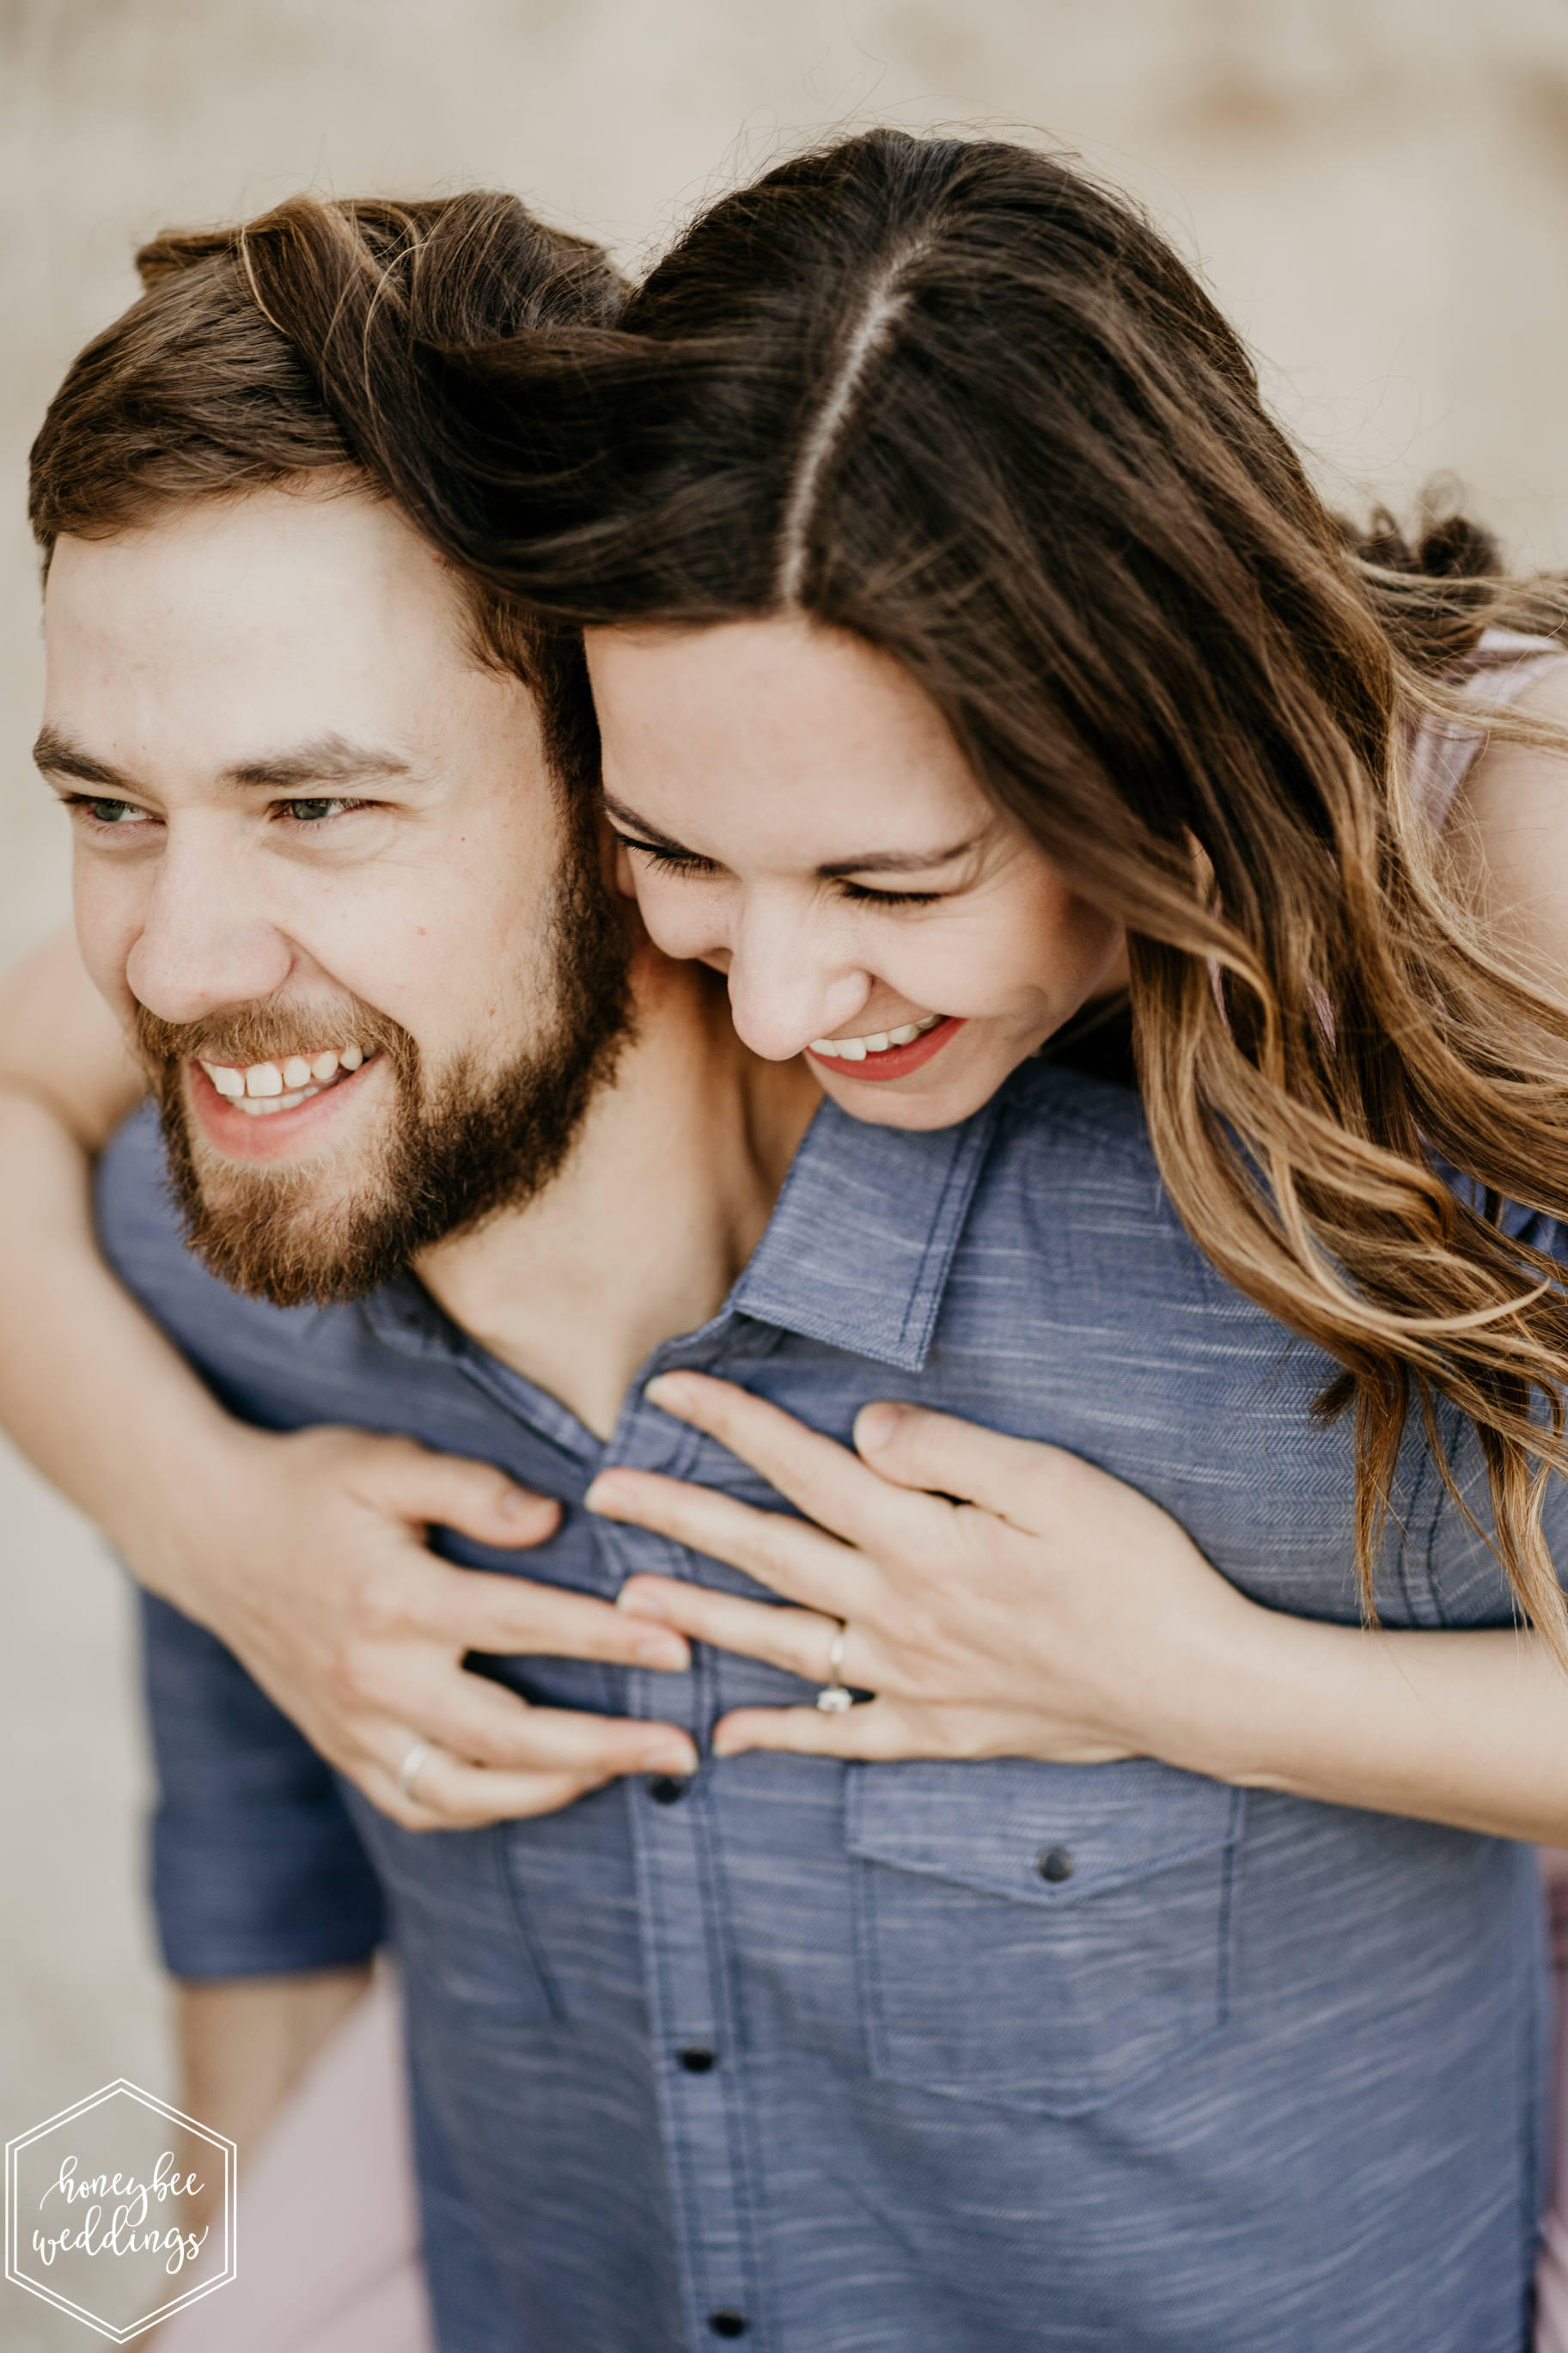 154Montana Wedding Photographer_Polson Engagement Session_Carrie & Matt_Honeybee Weddings_May 11, 2019-303.jpg